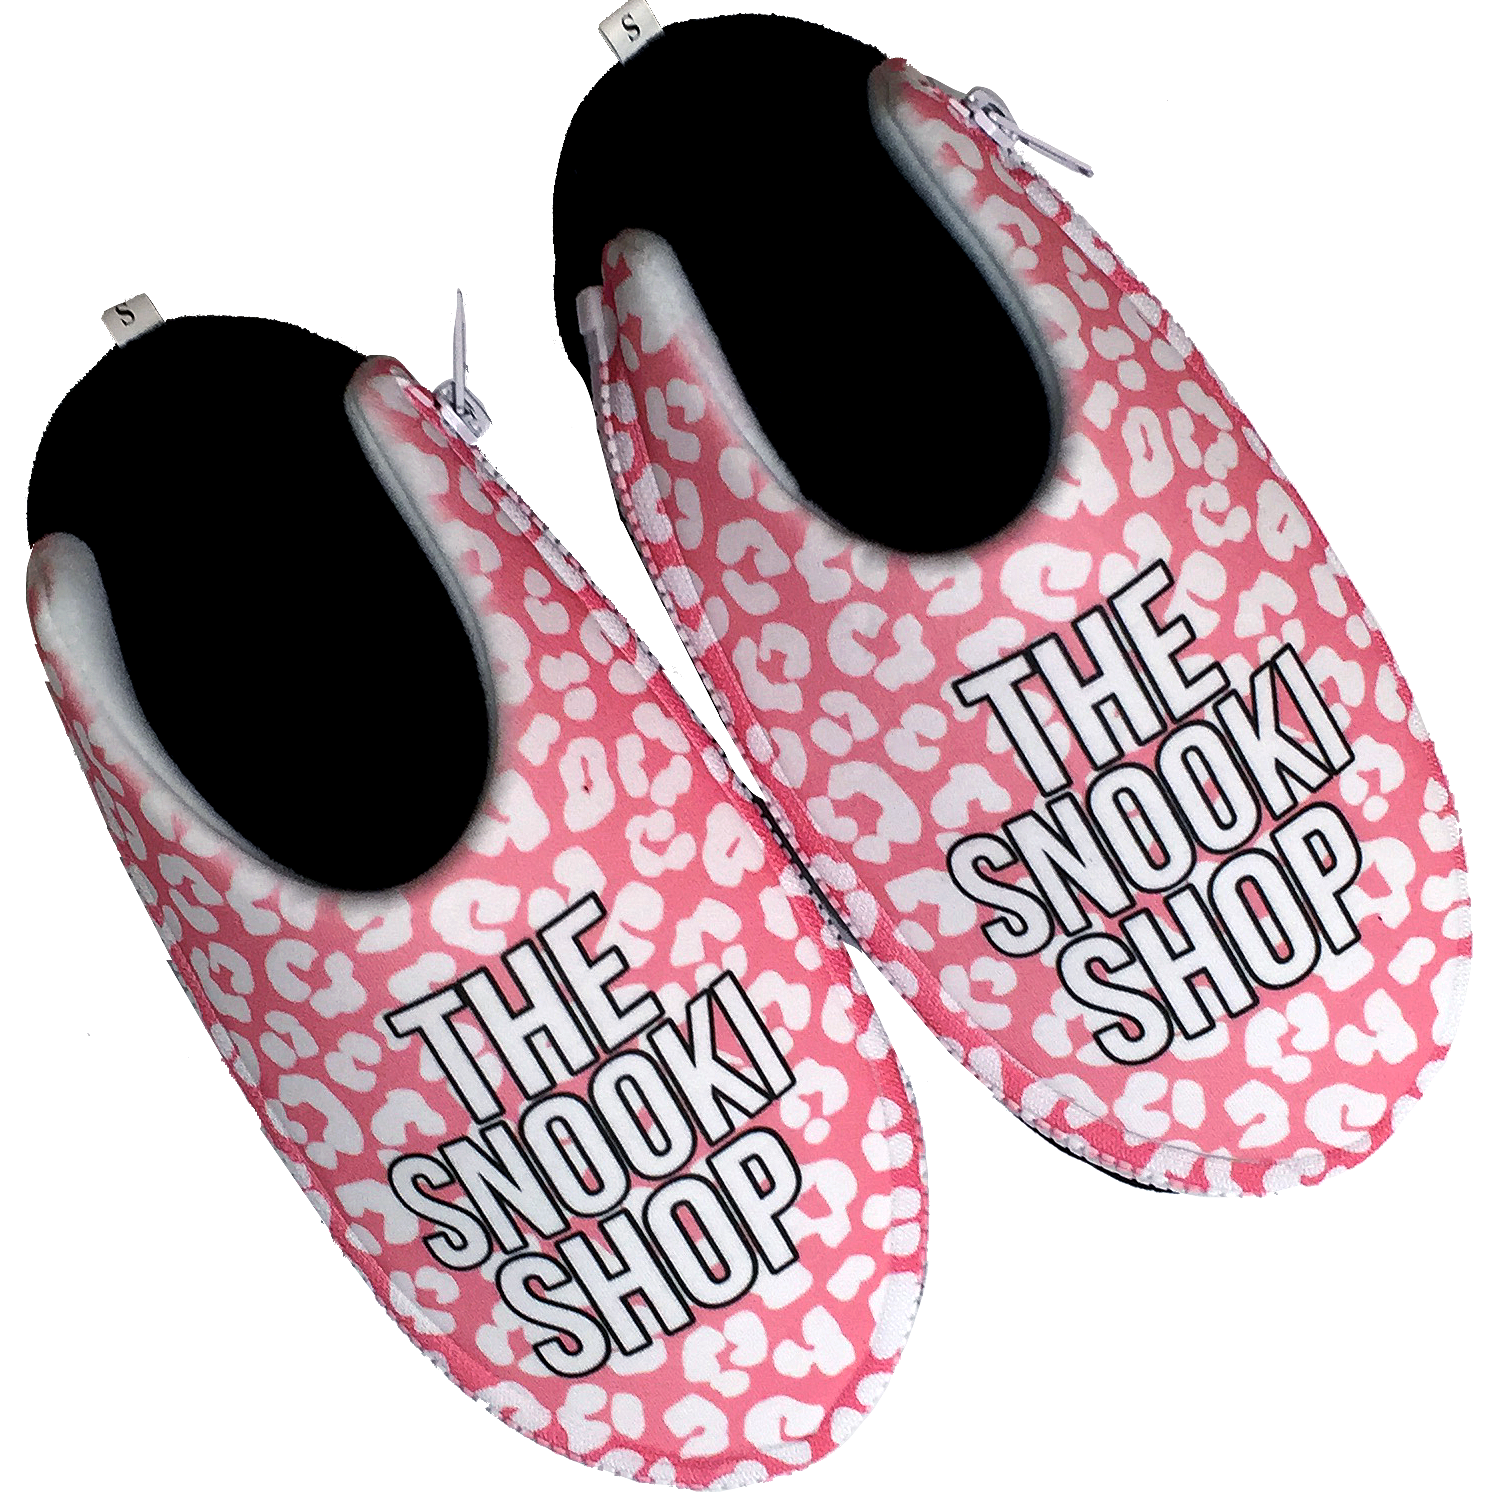 The Snooki Shop Zlipperz - Pink Leopard